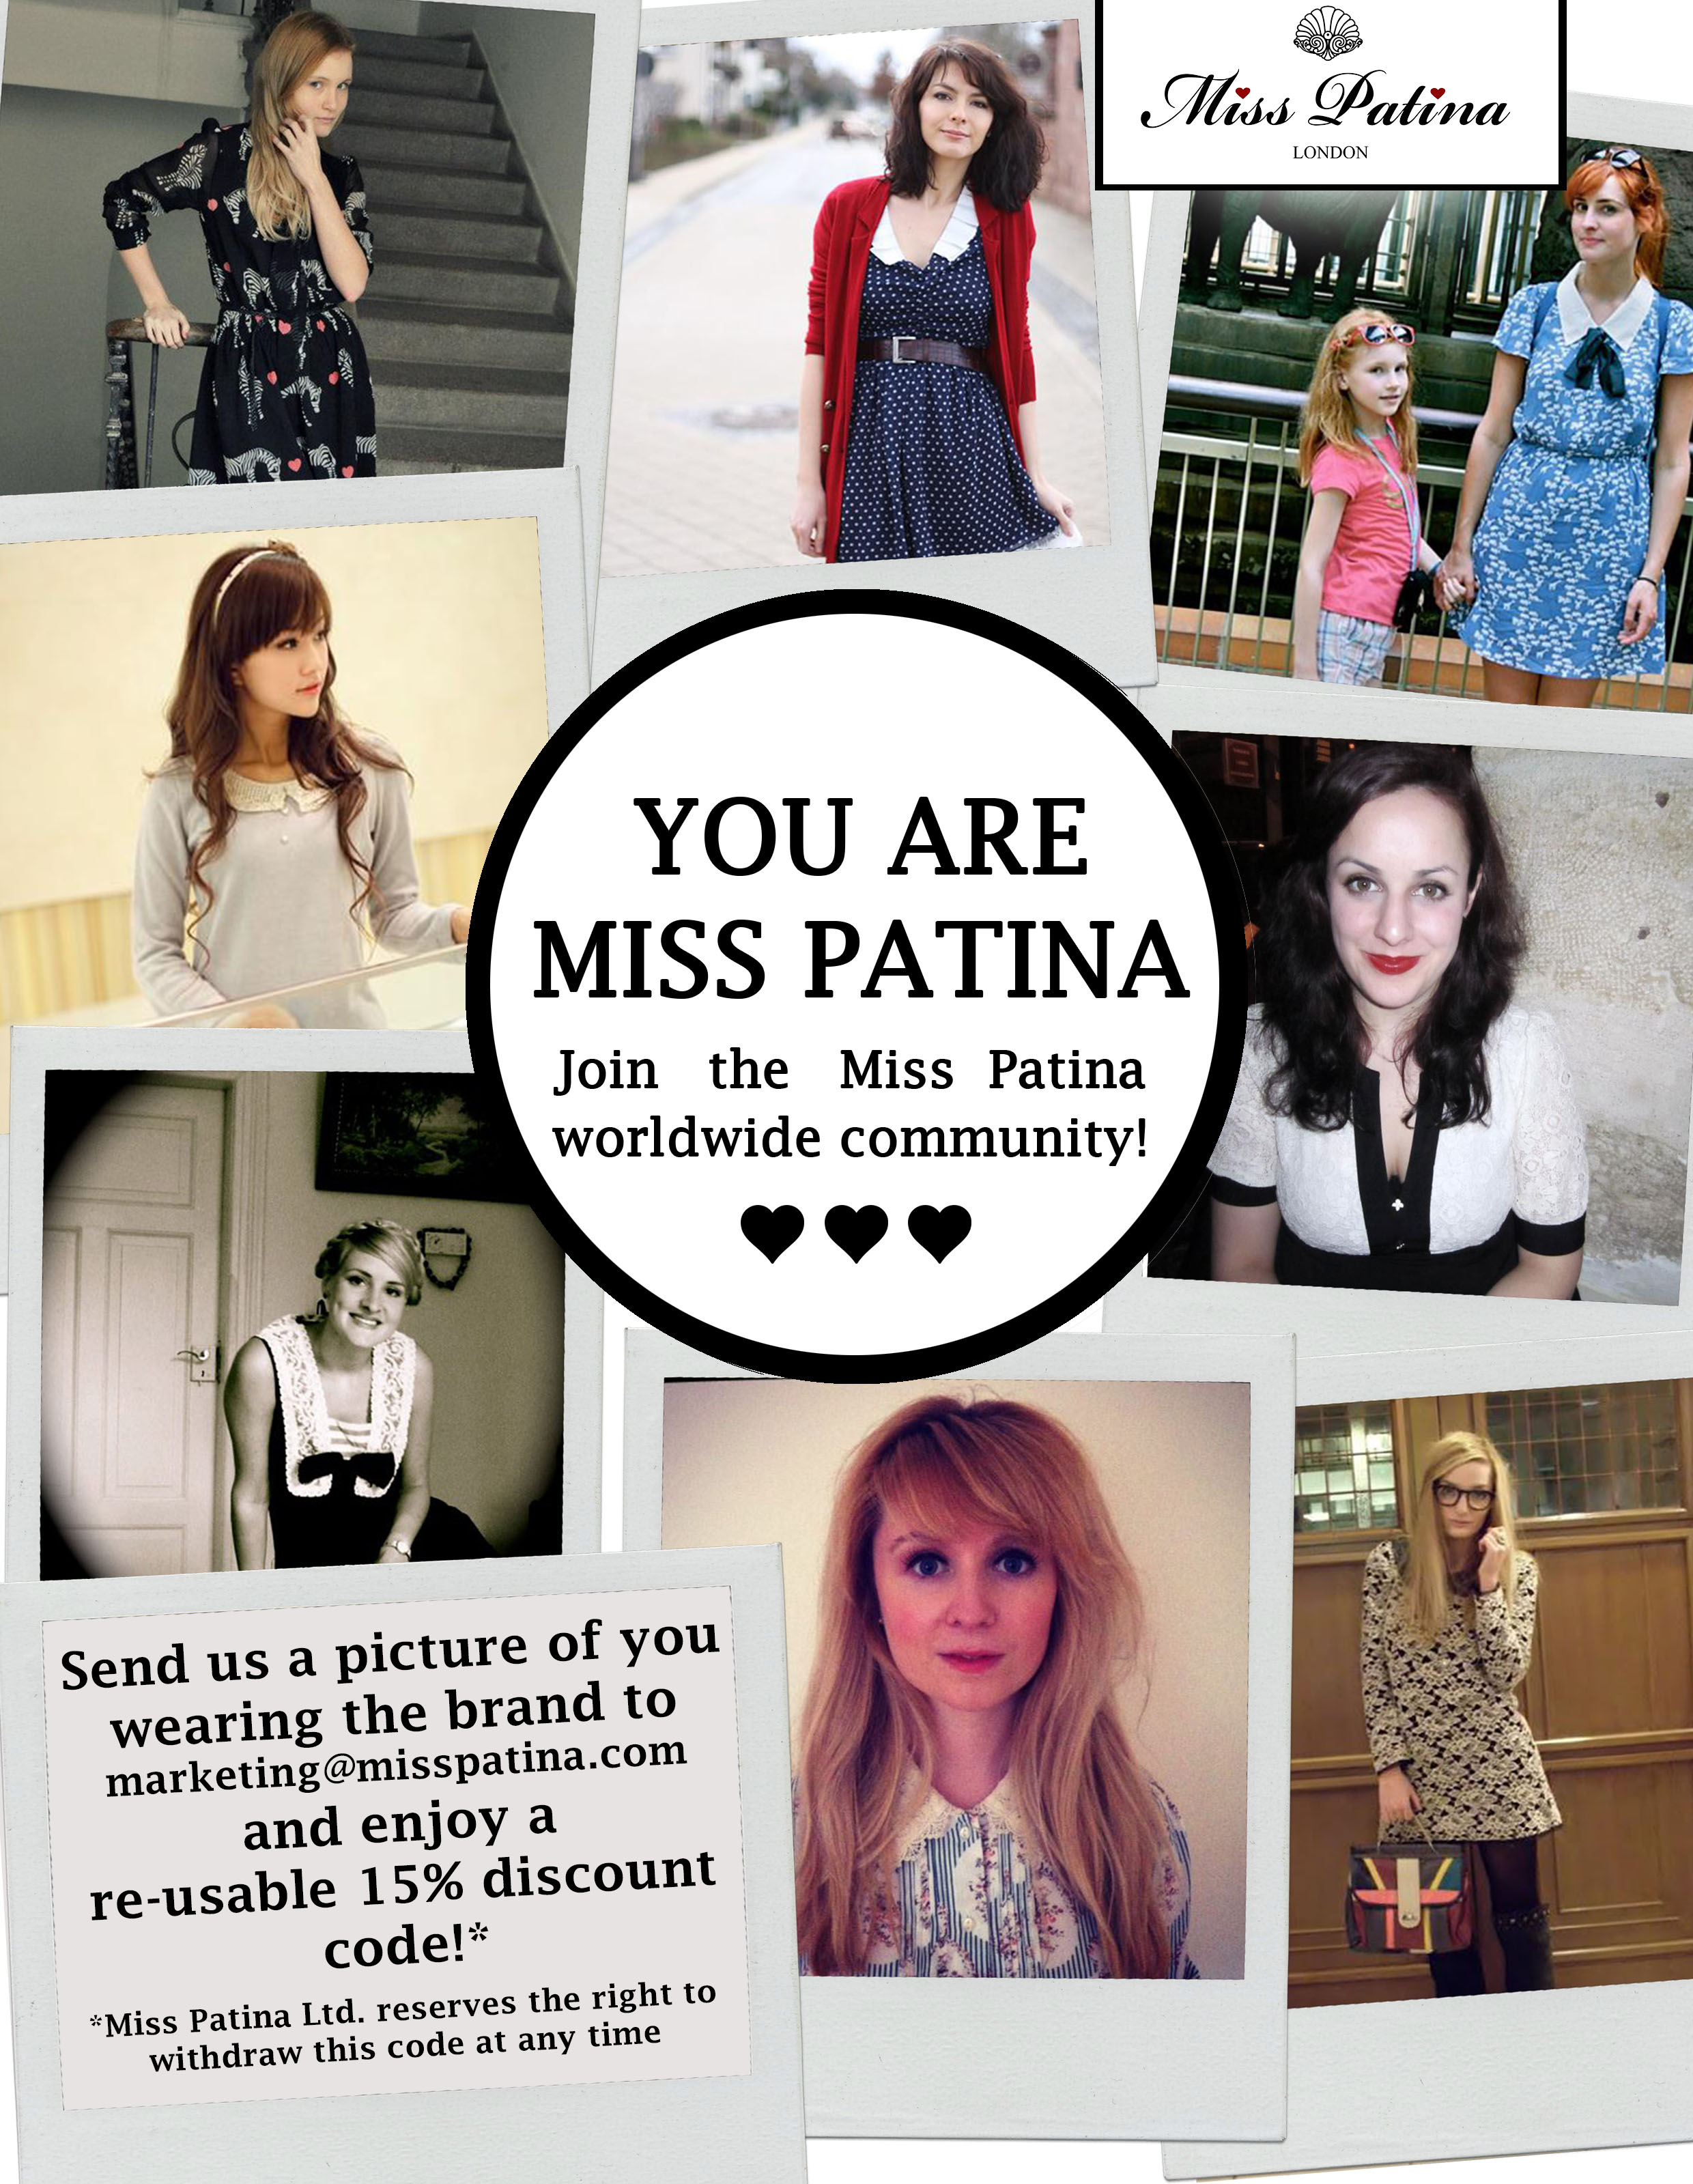 Are you Miss Patina?